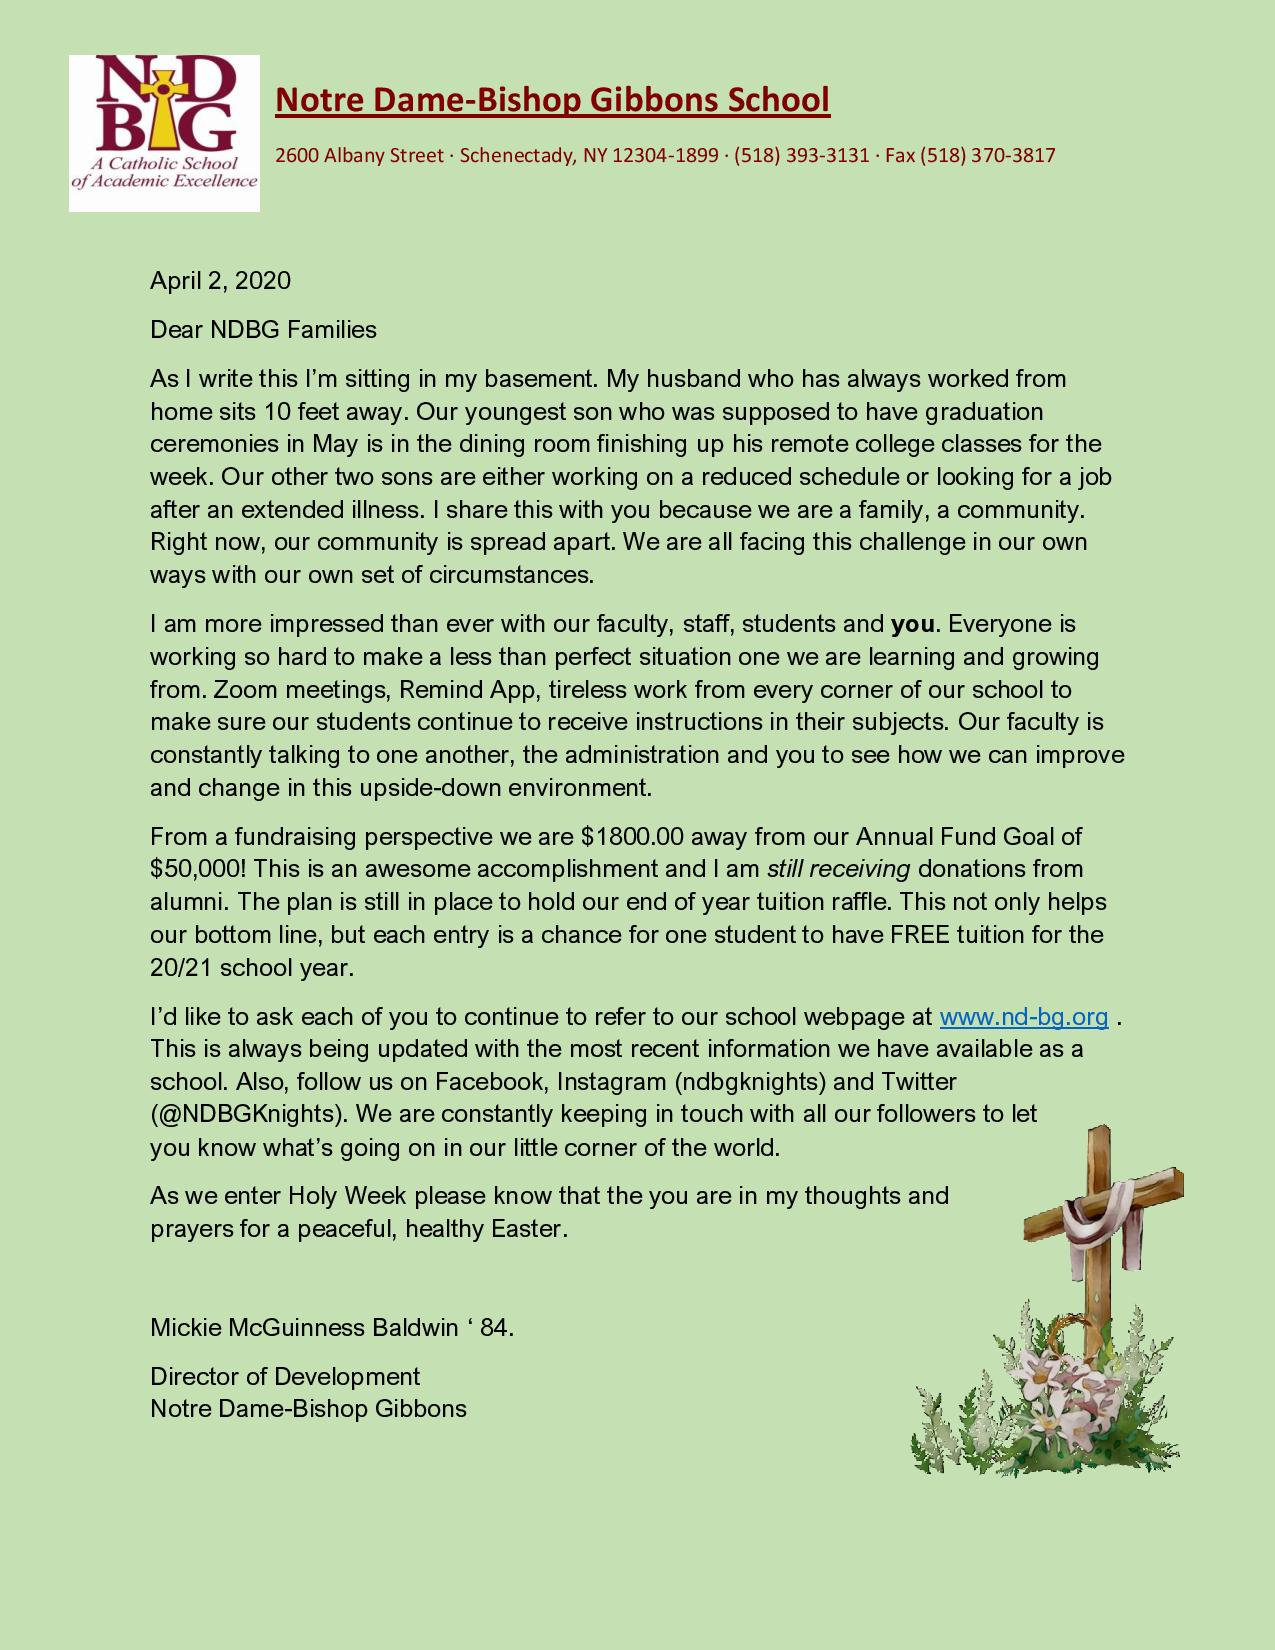 April Letter to Families